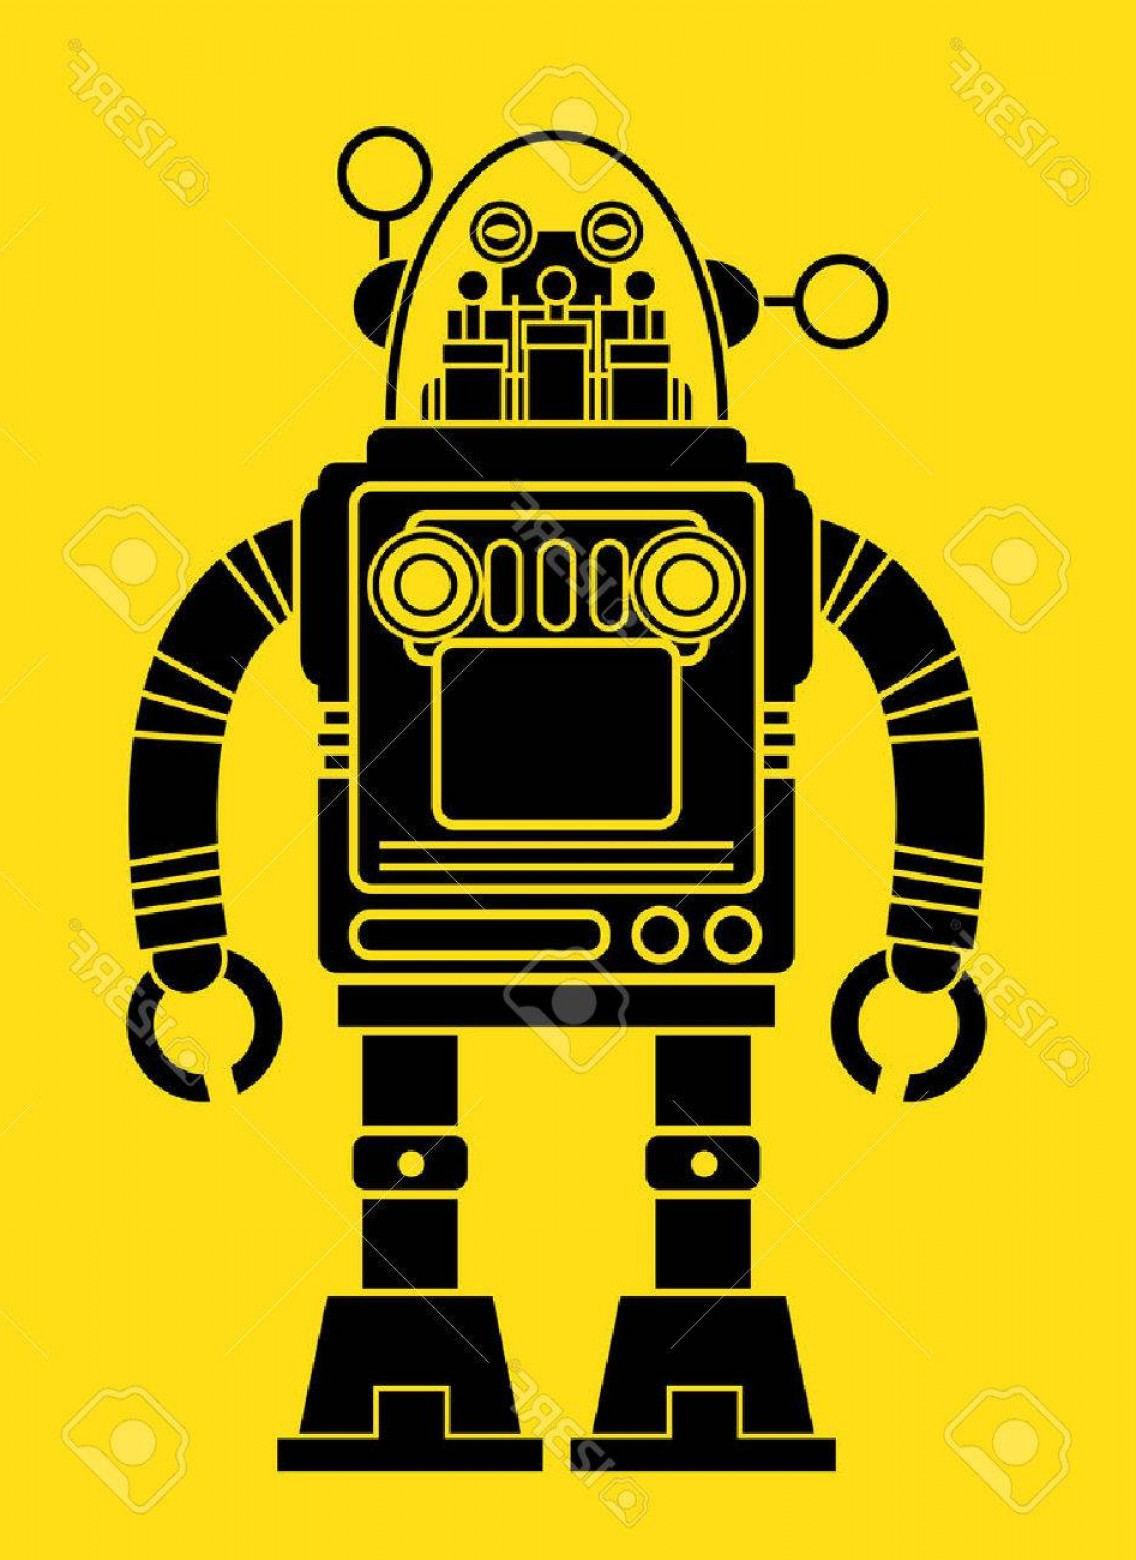 Retro Robot Vector at GetDrawings com | Free for personal